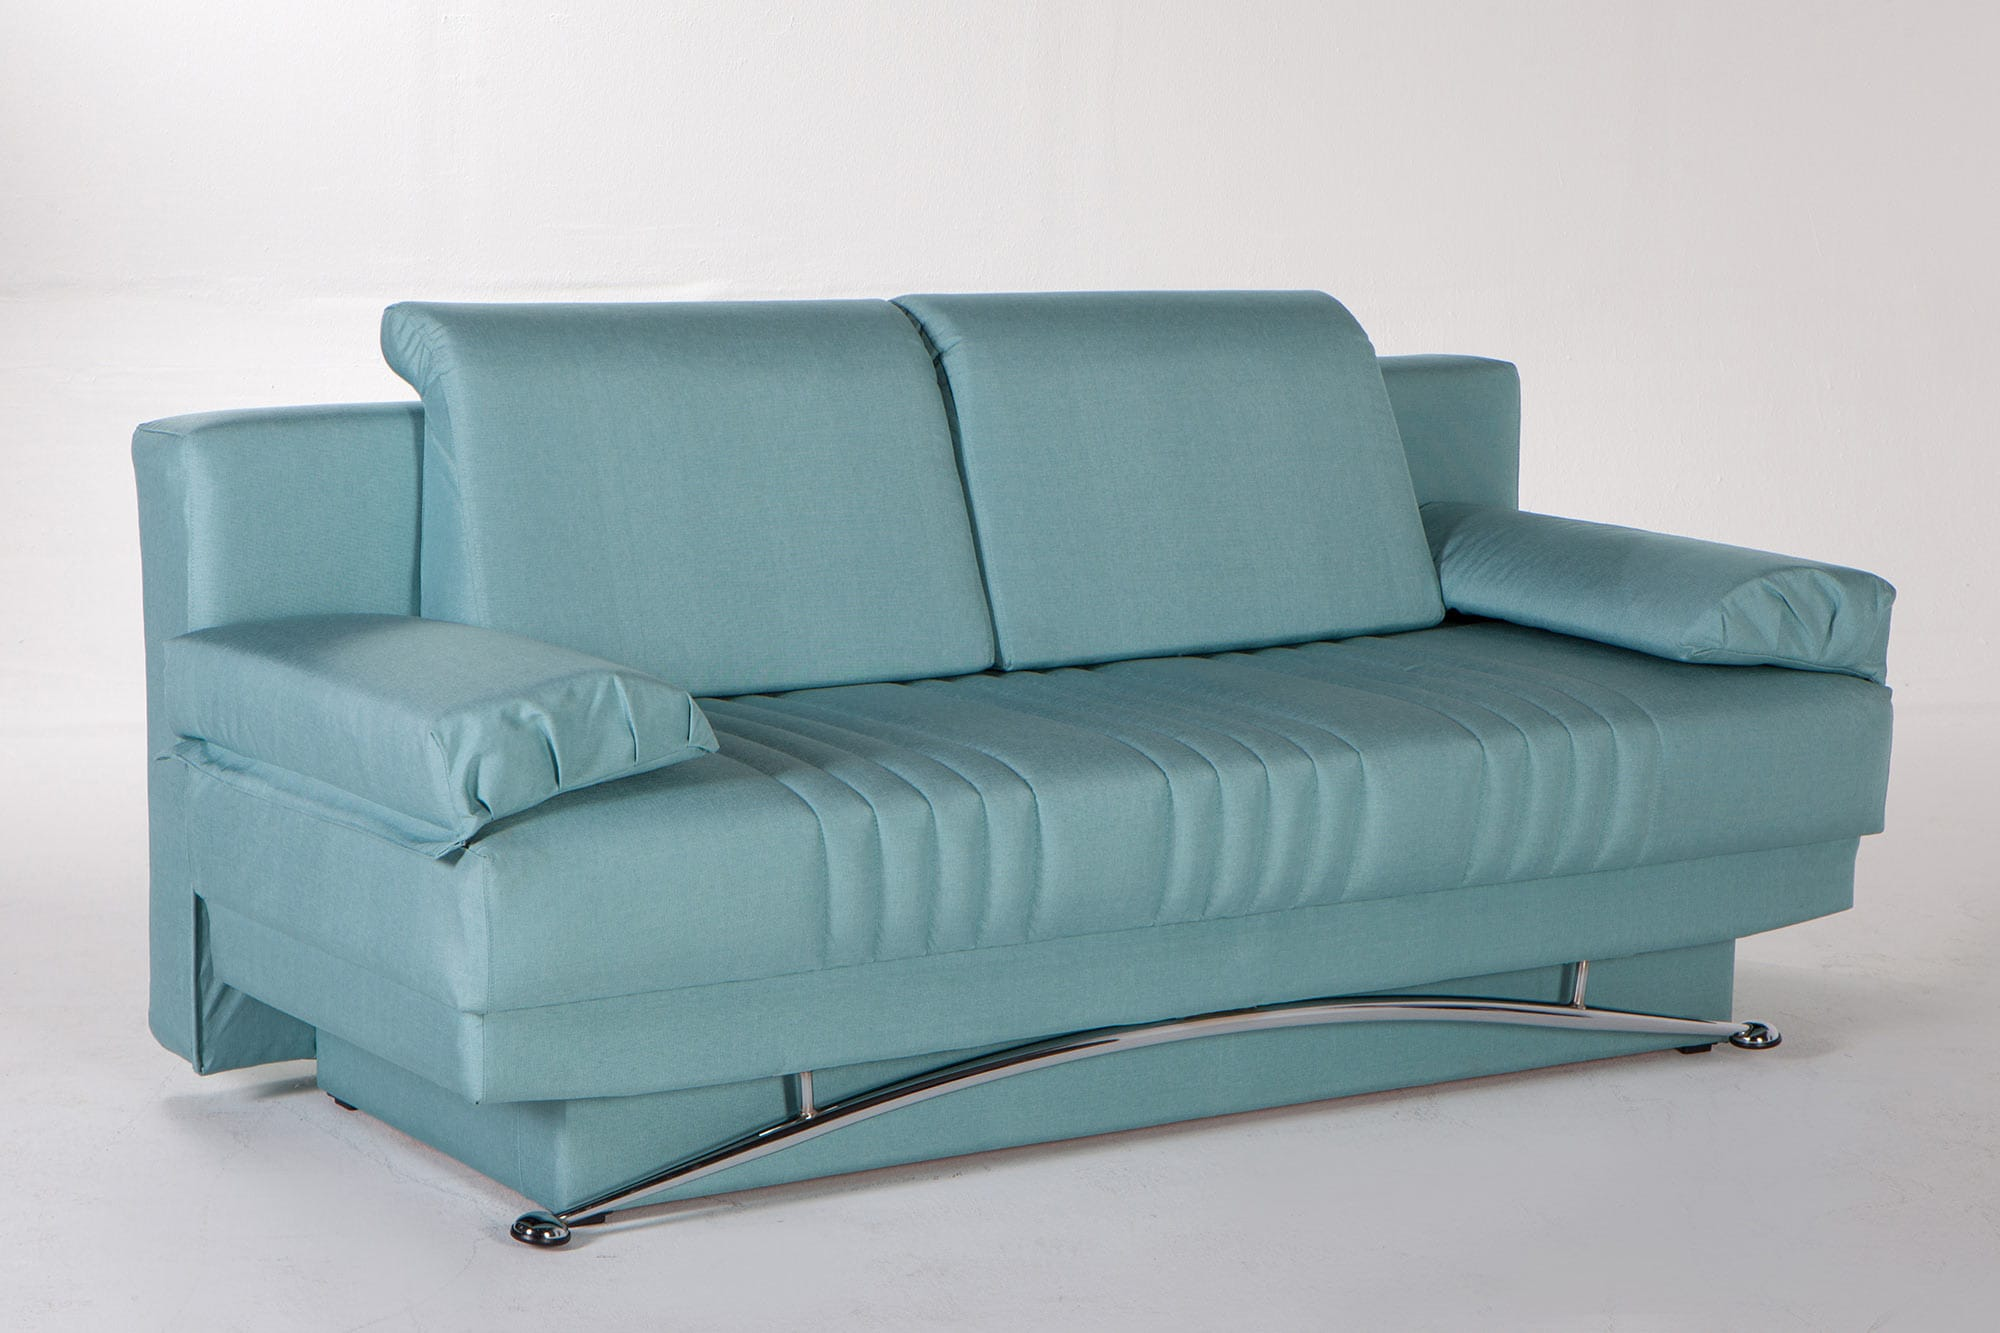 Istikbal Schlafsofa Fantasy Convertible Sofa Bed In Queen By Istikbal